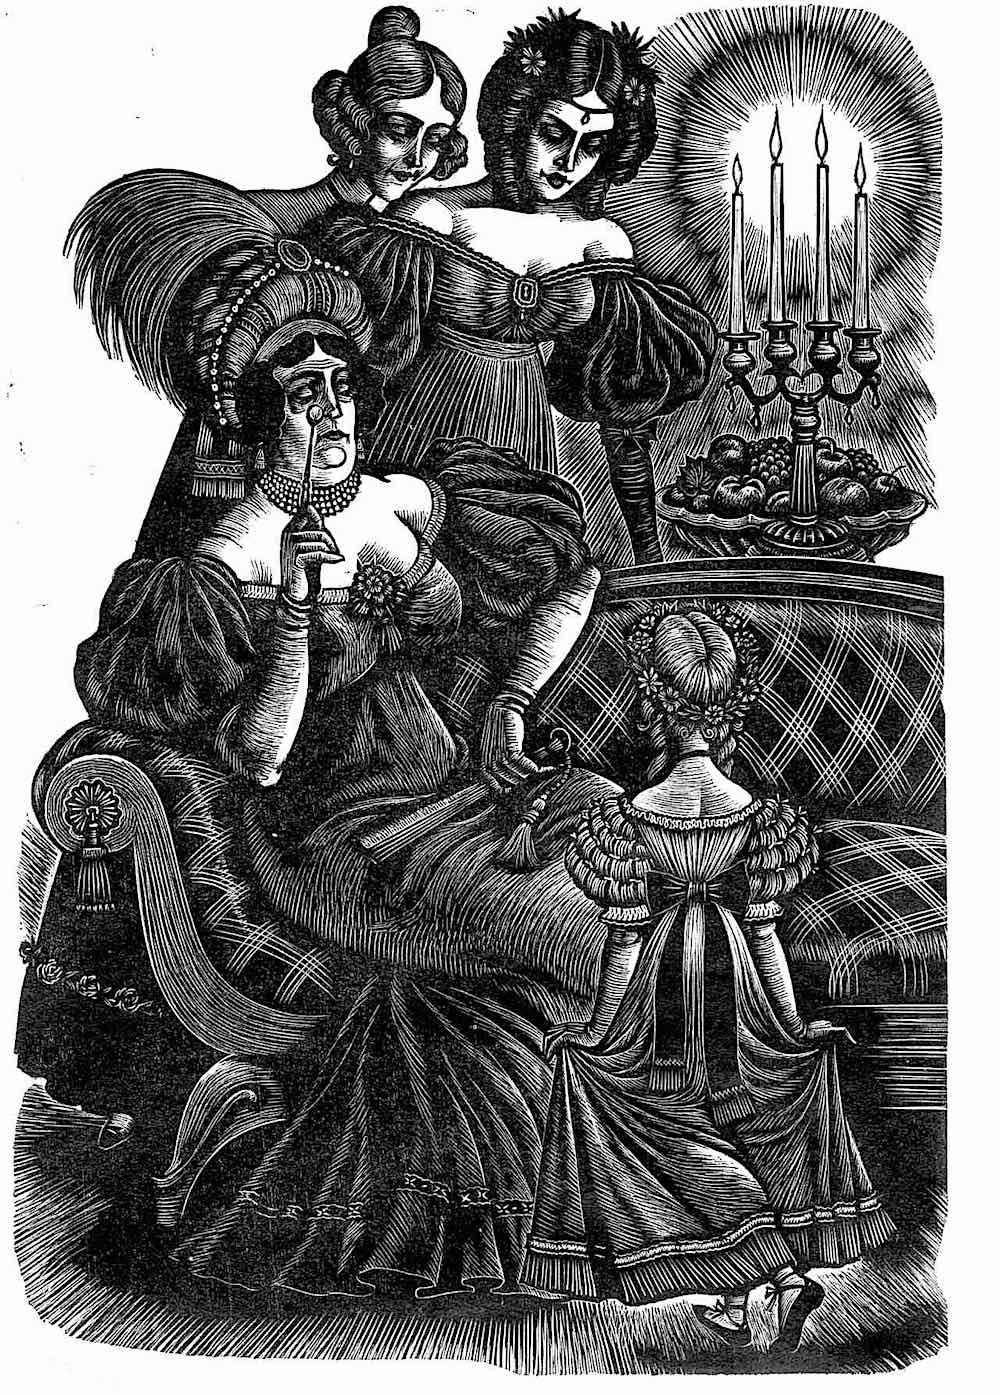 a Fritz Eichenberg illustration of a little girl properly curtsying for older women